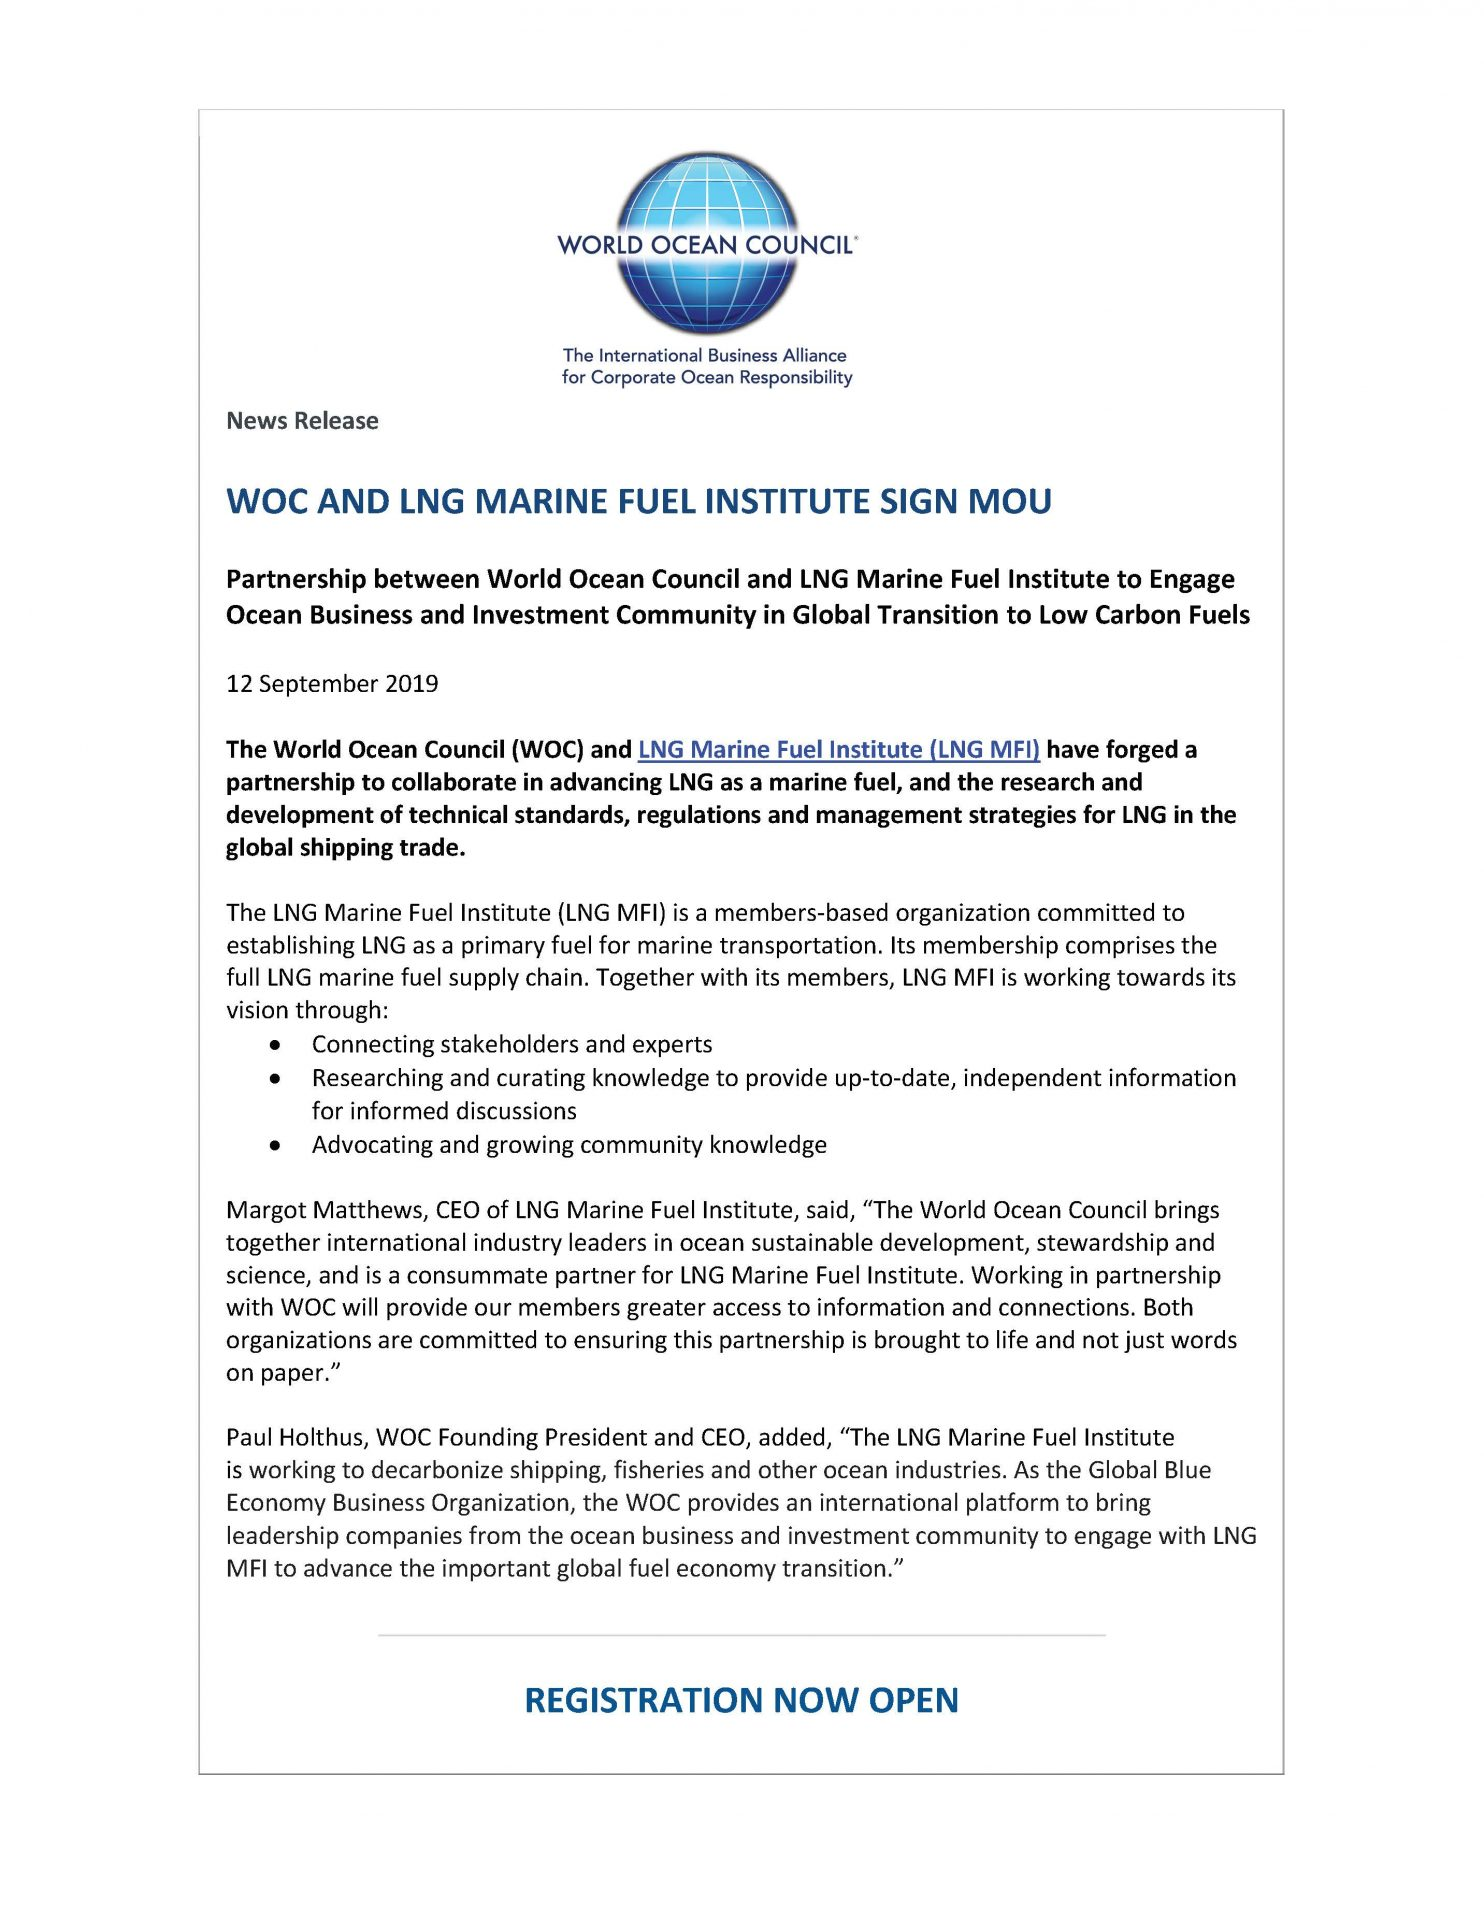 WOC and LNG Marine Fuel Institute Sign MOU - 12 September 2019